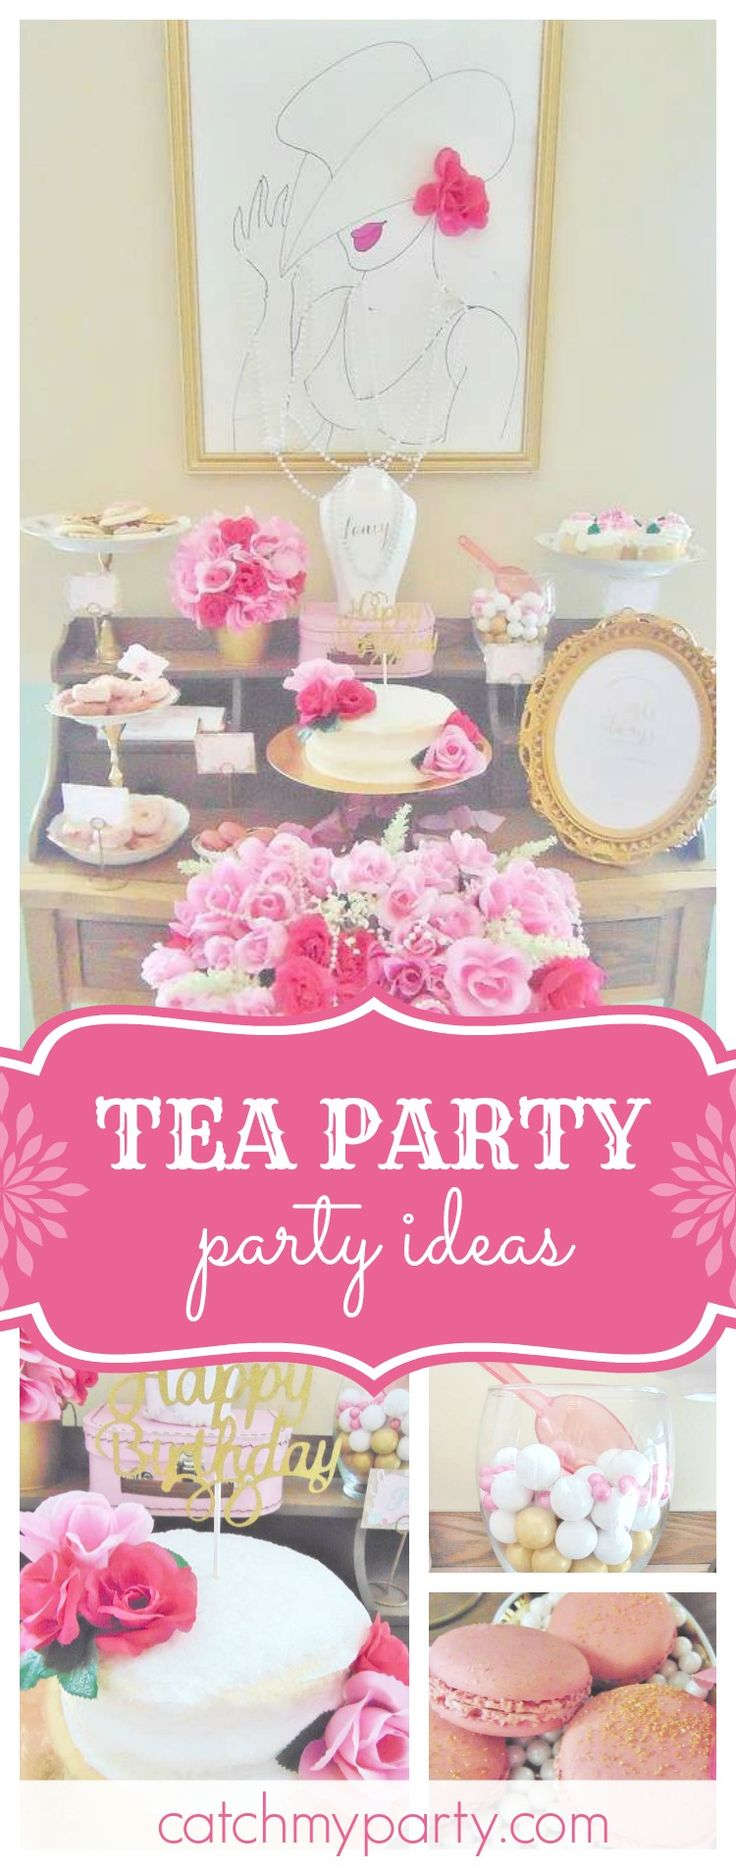 866 best Pink Party Ideas images on Pinterest | Candy stations ...